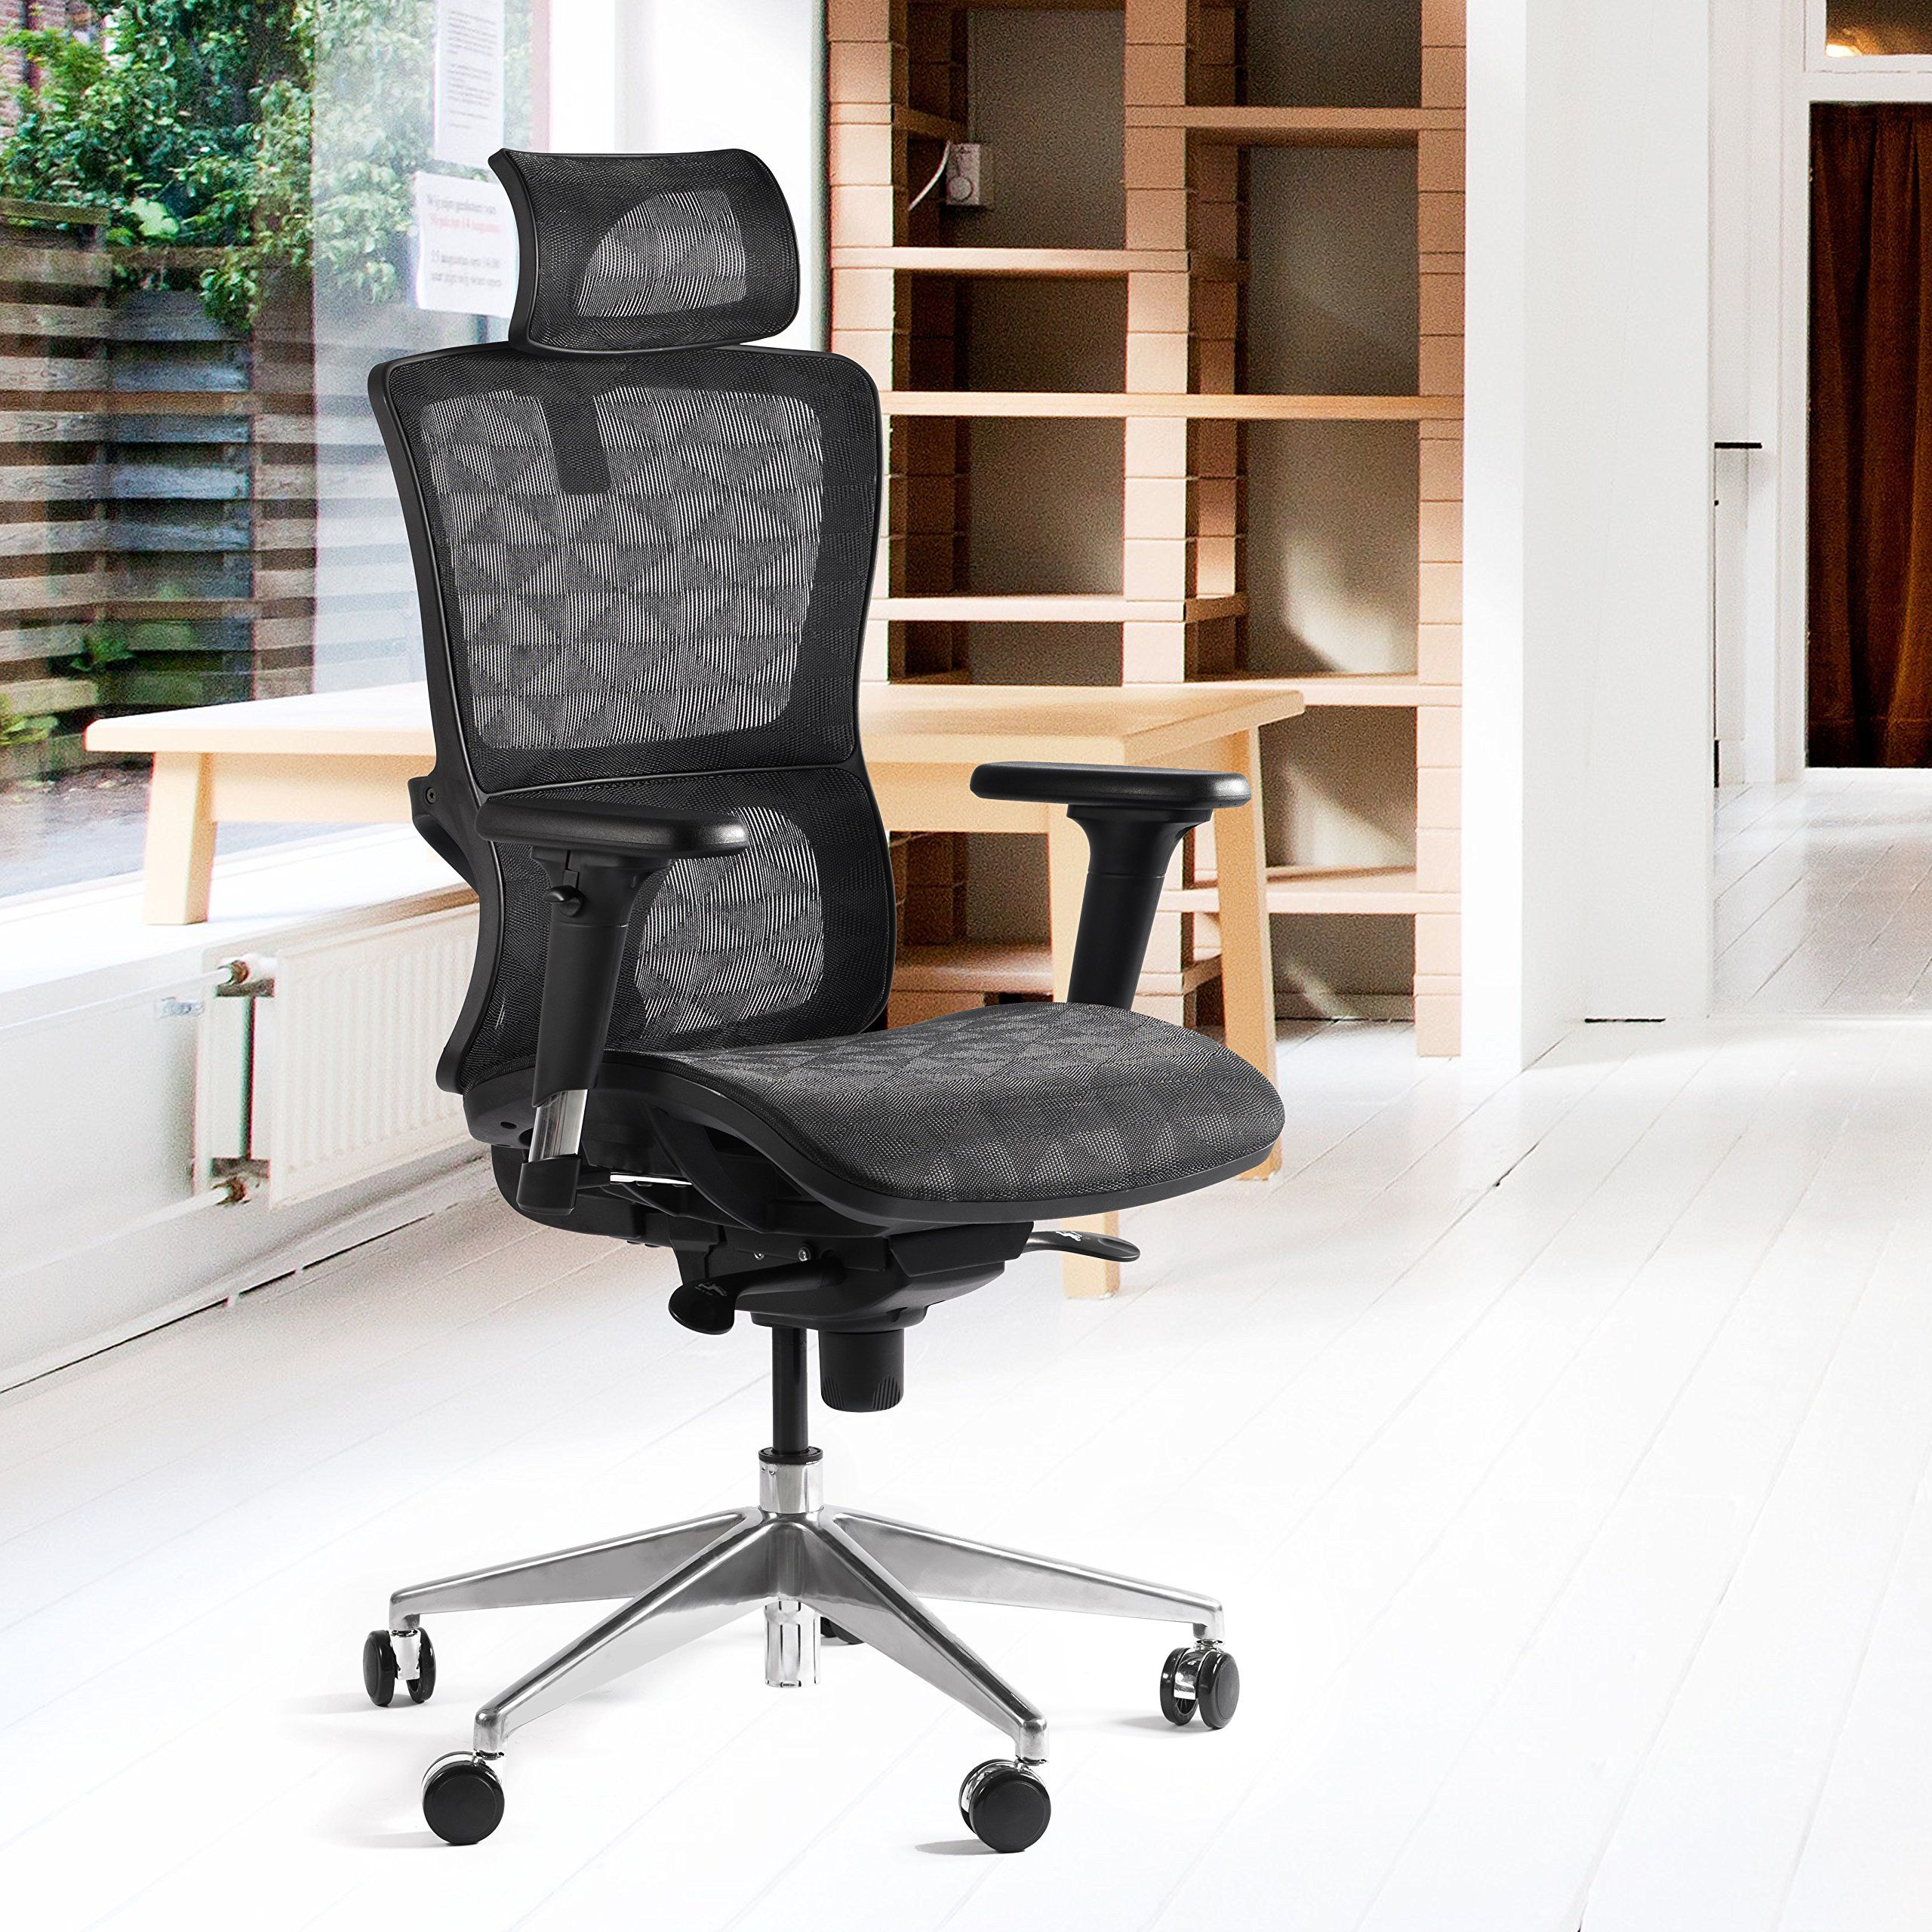 Everking high back mesh ergonomic office chair with